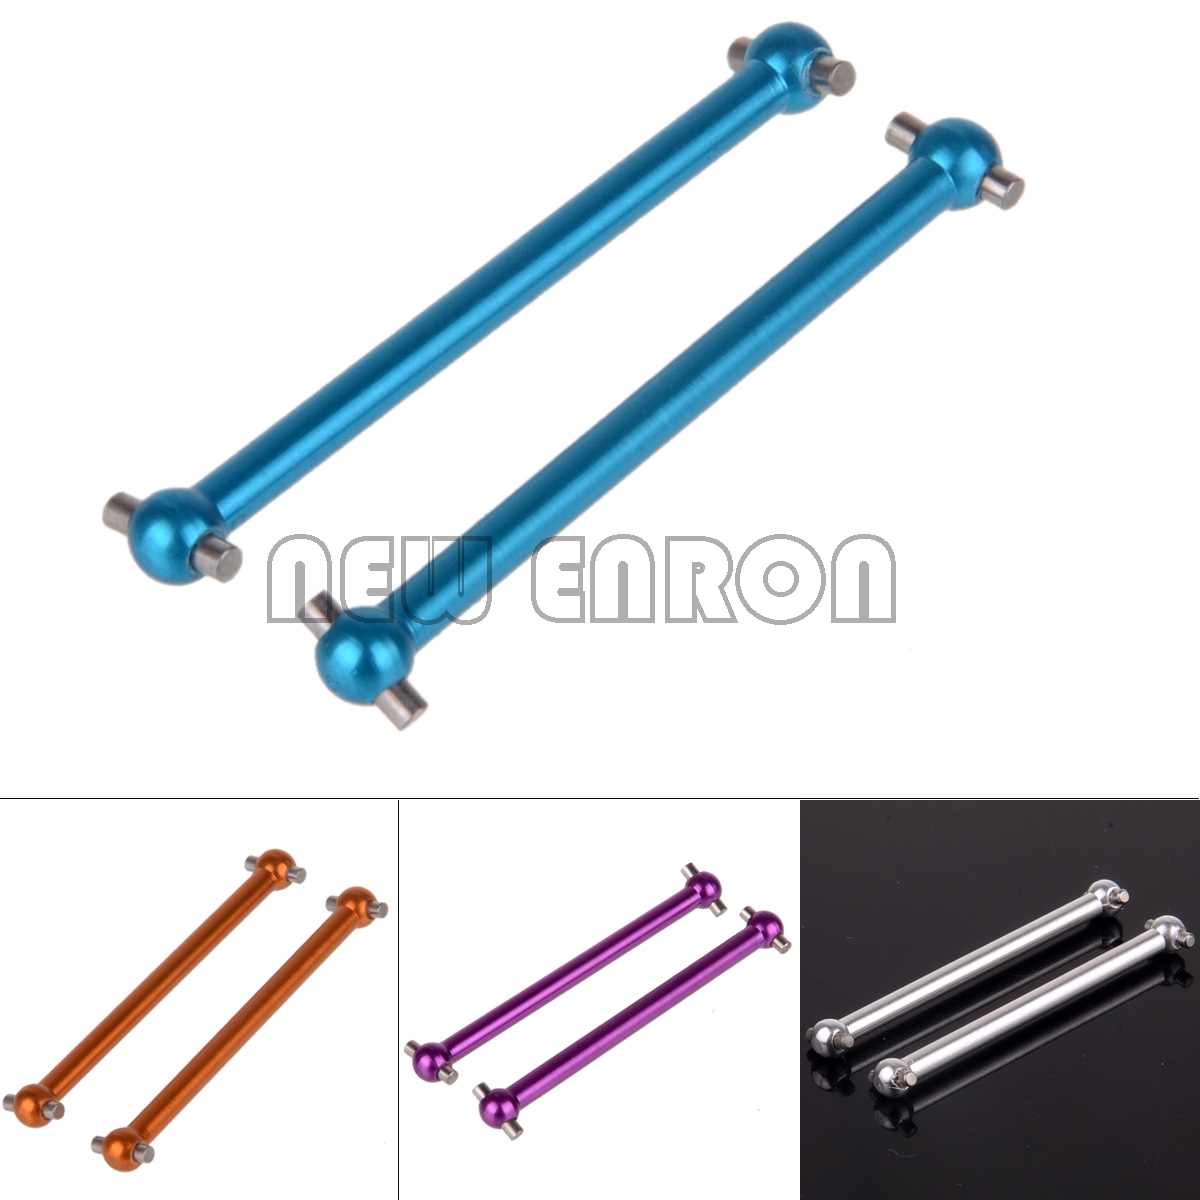 NEW ENRON 2P Aluminum 52mm F/R Dogbone 580027 RC Car 1/18 Buggy Monster Truck HIMOTO HSP